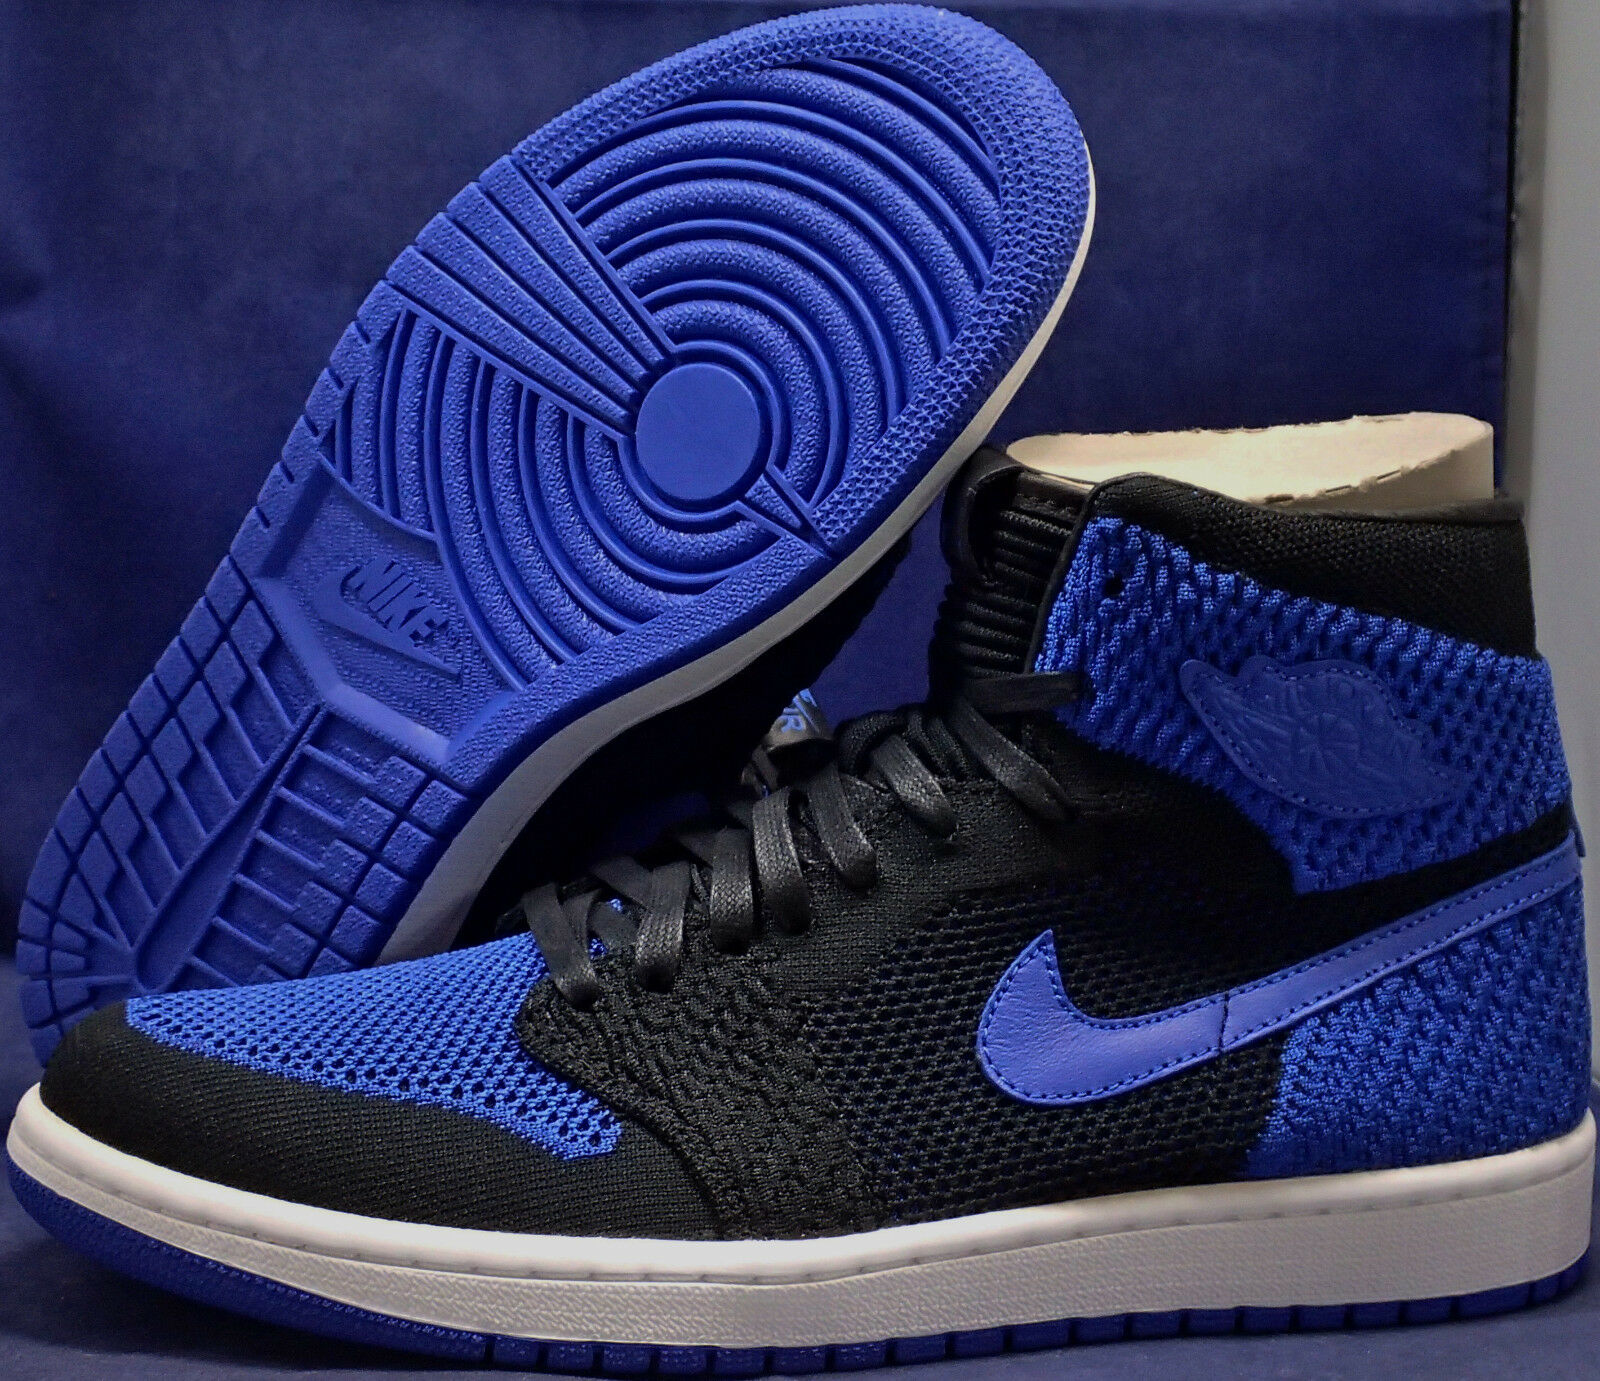 Nike Air Jordan 1 Retro Hi Flyknit Black Game Royal High SZ 12 ( 919704-006 )